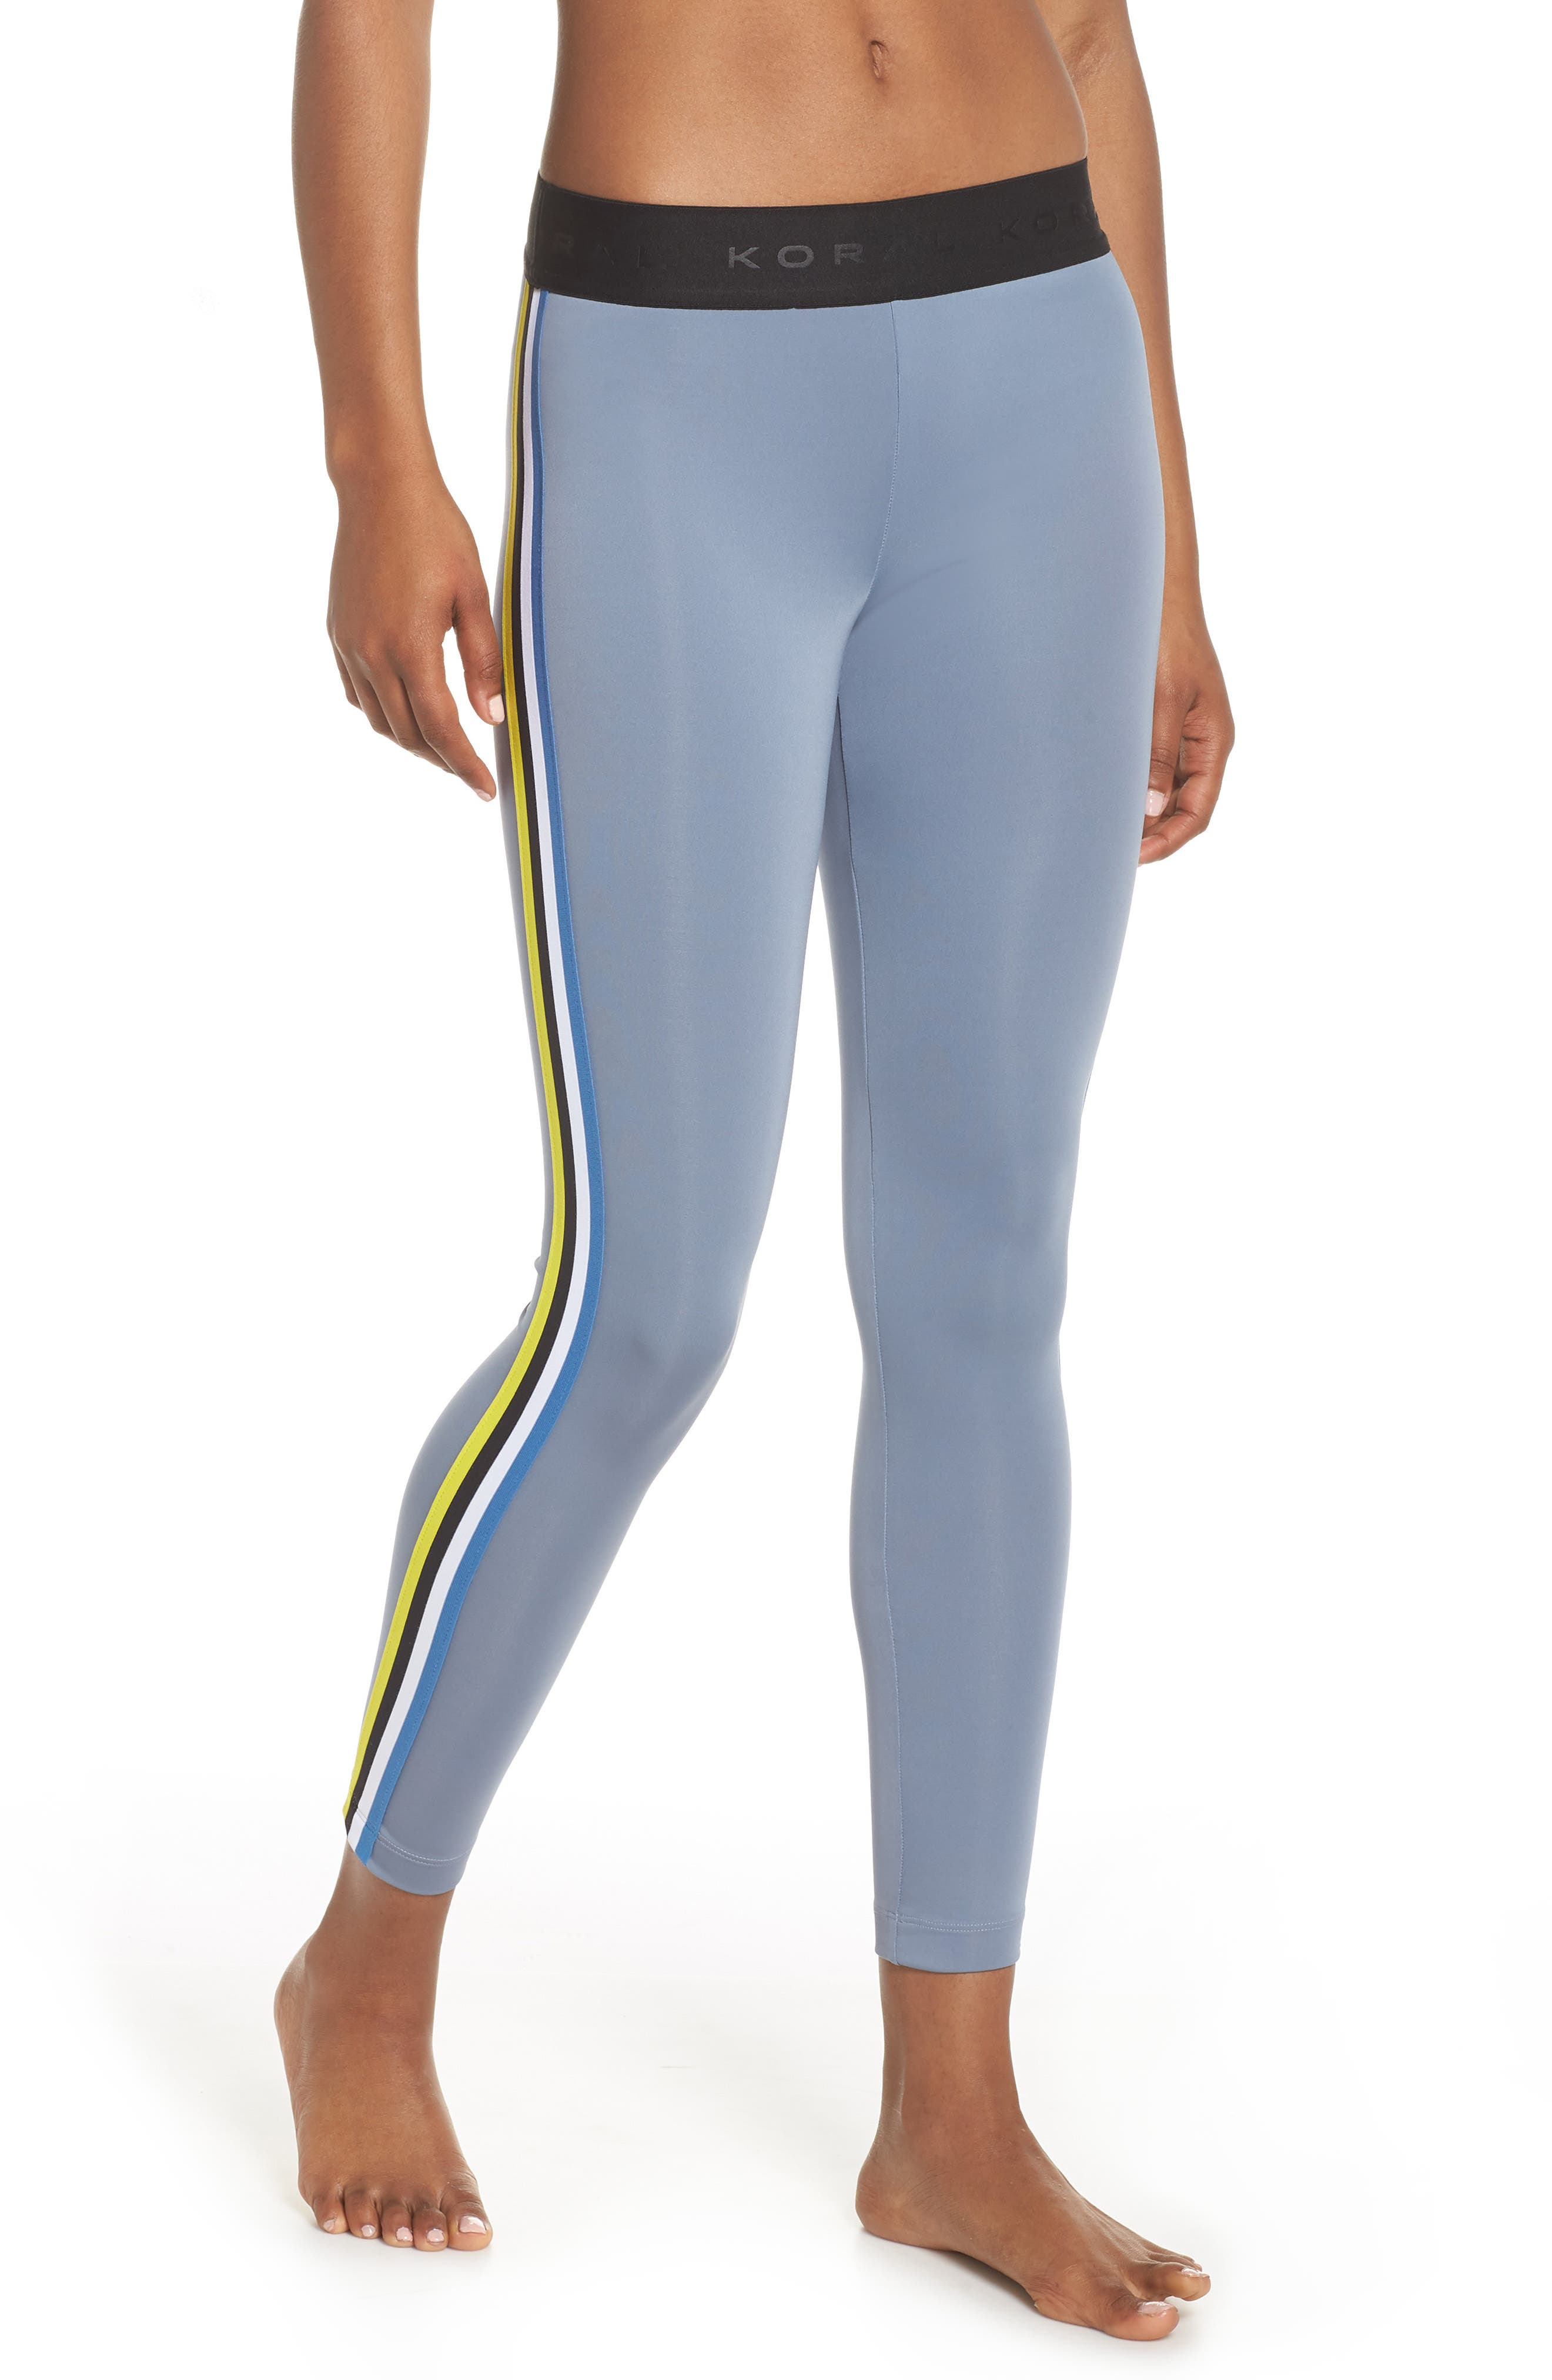 Rhys Leggings,                             Main thumbnail 1, color,                             Nova